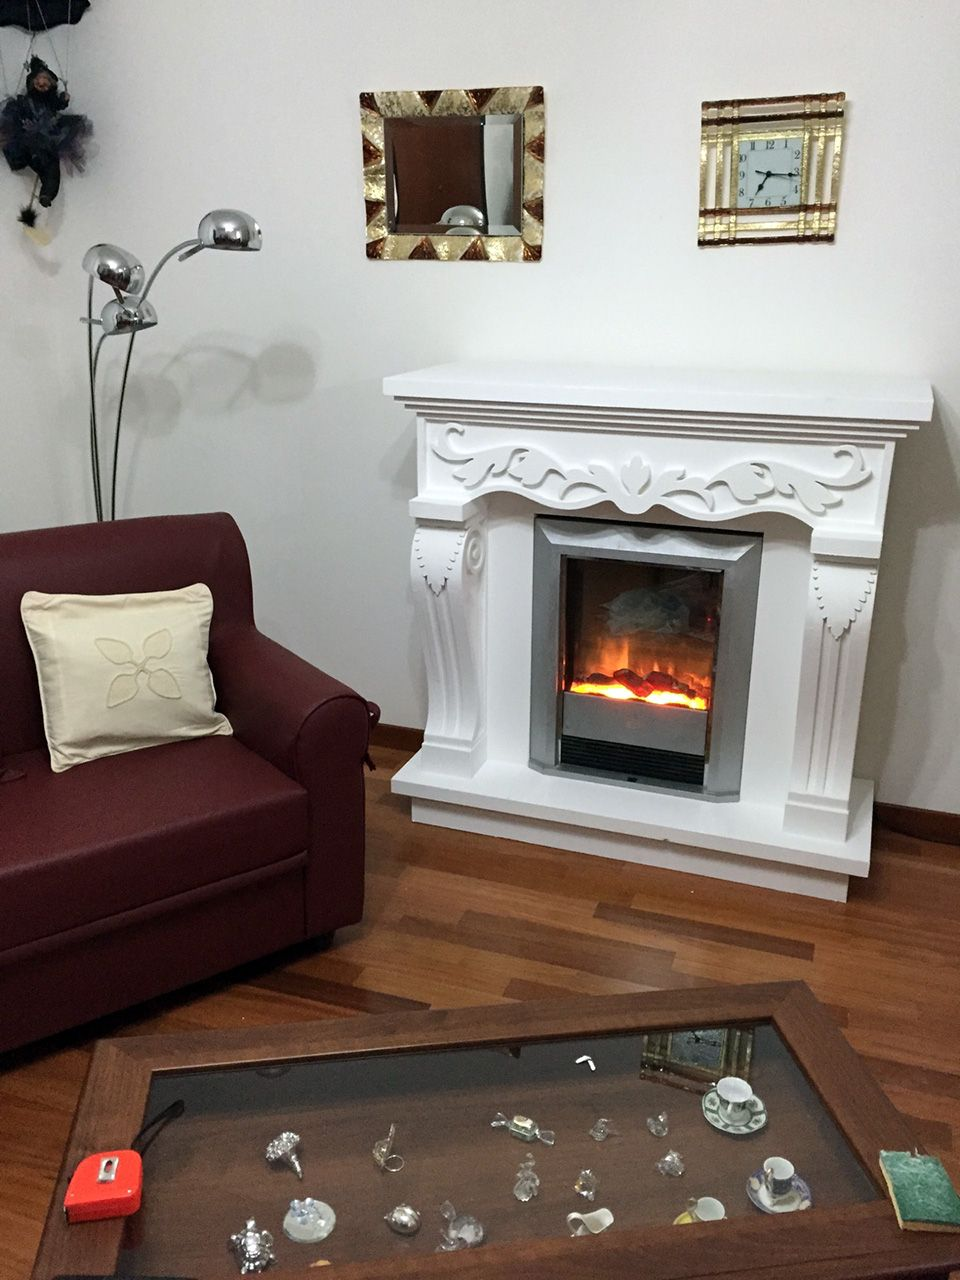 Faux fireplace Finto camino decorativo modello Impero con